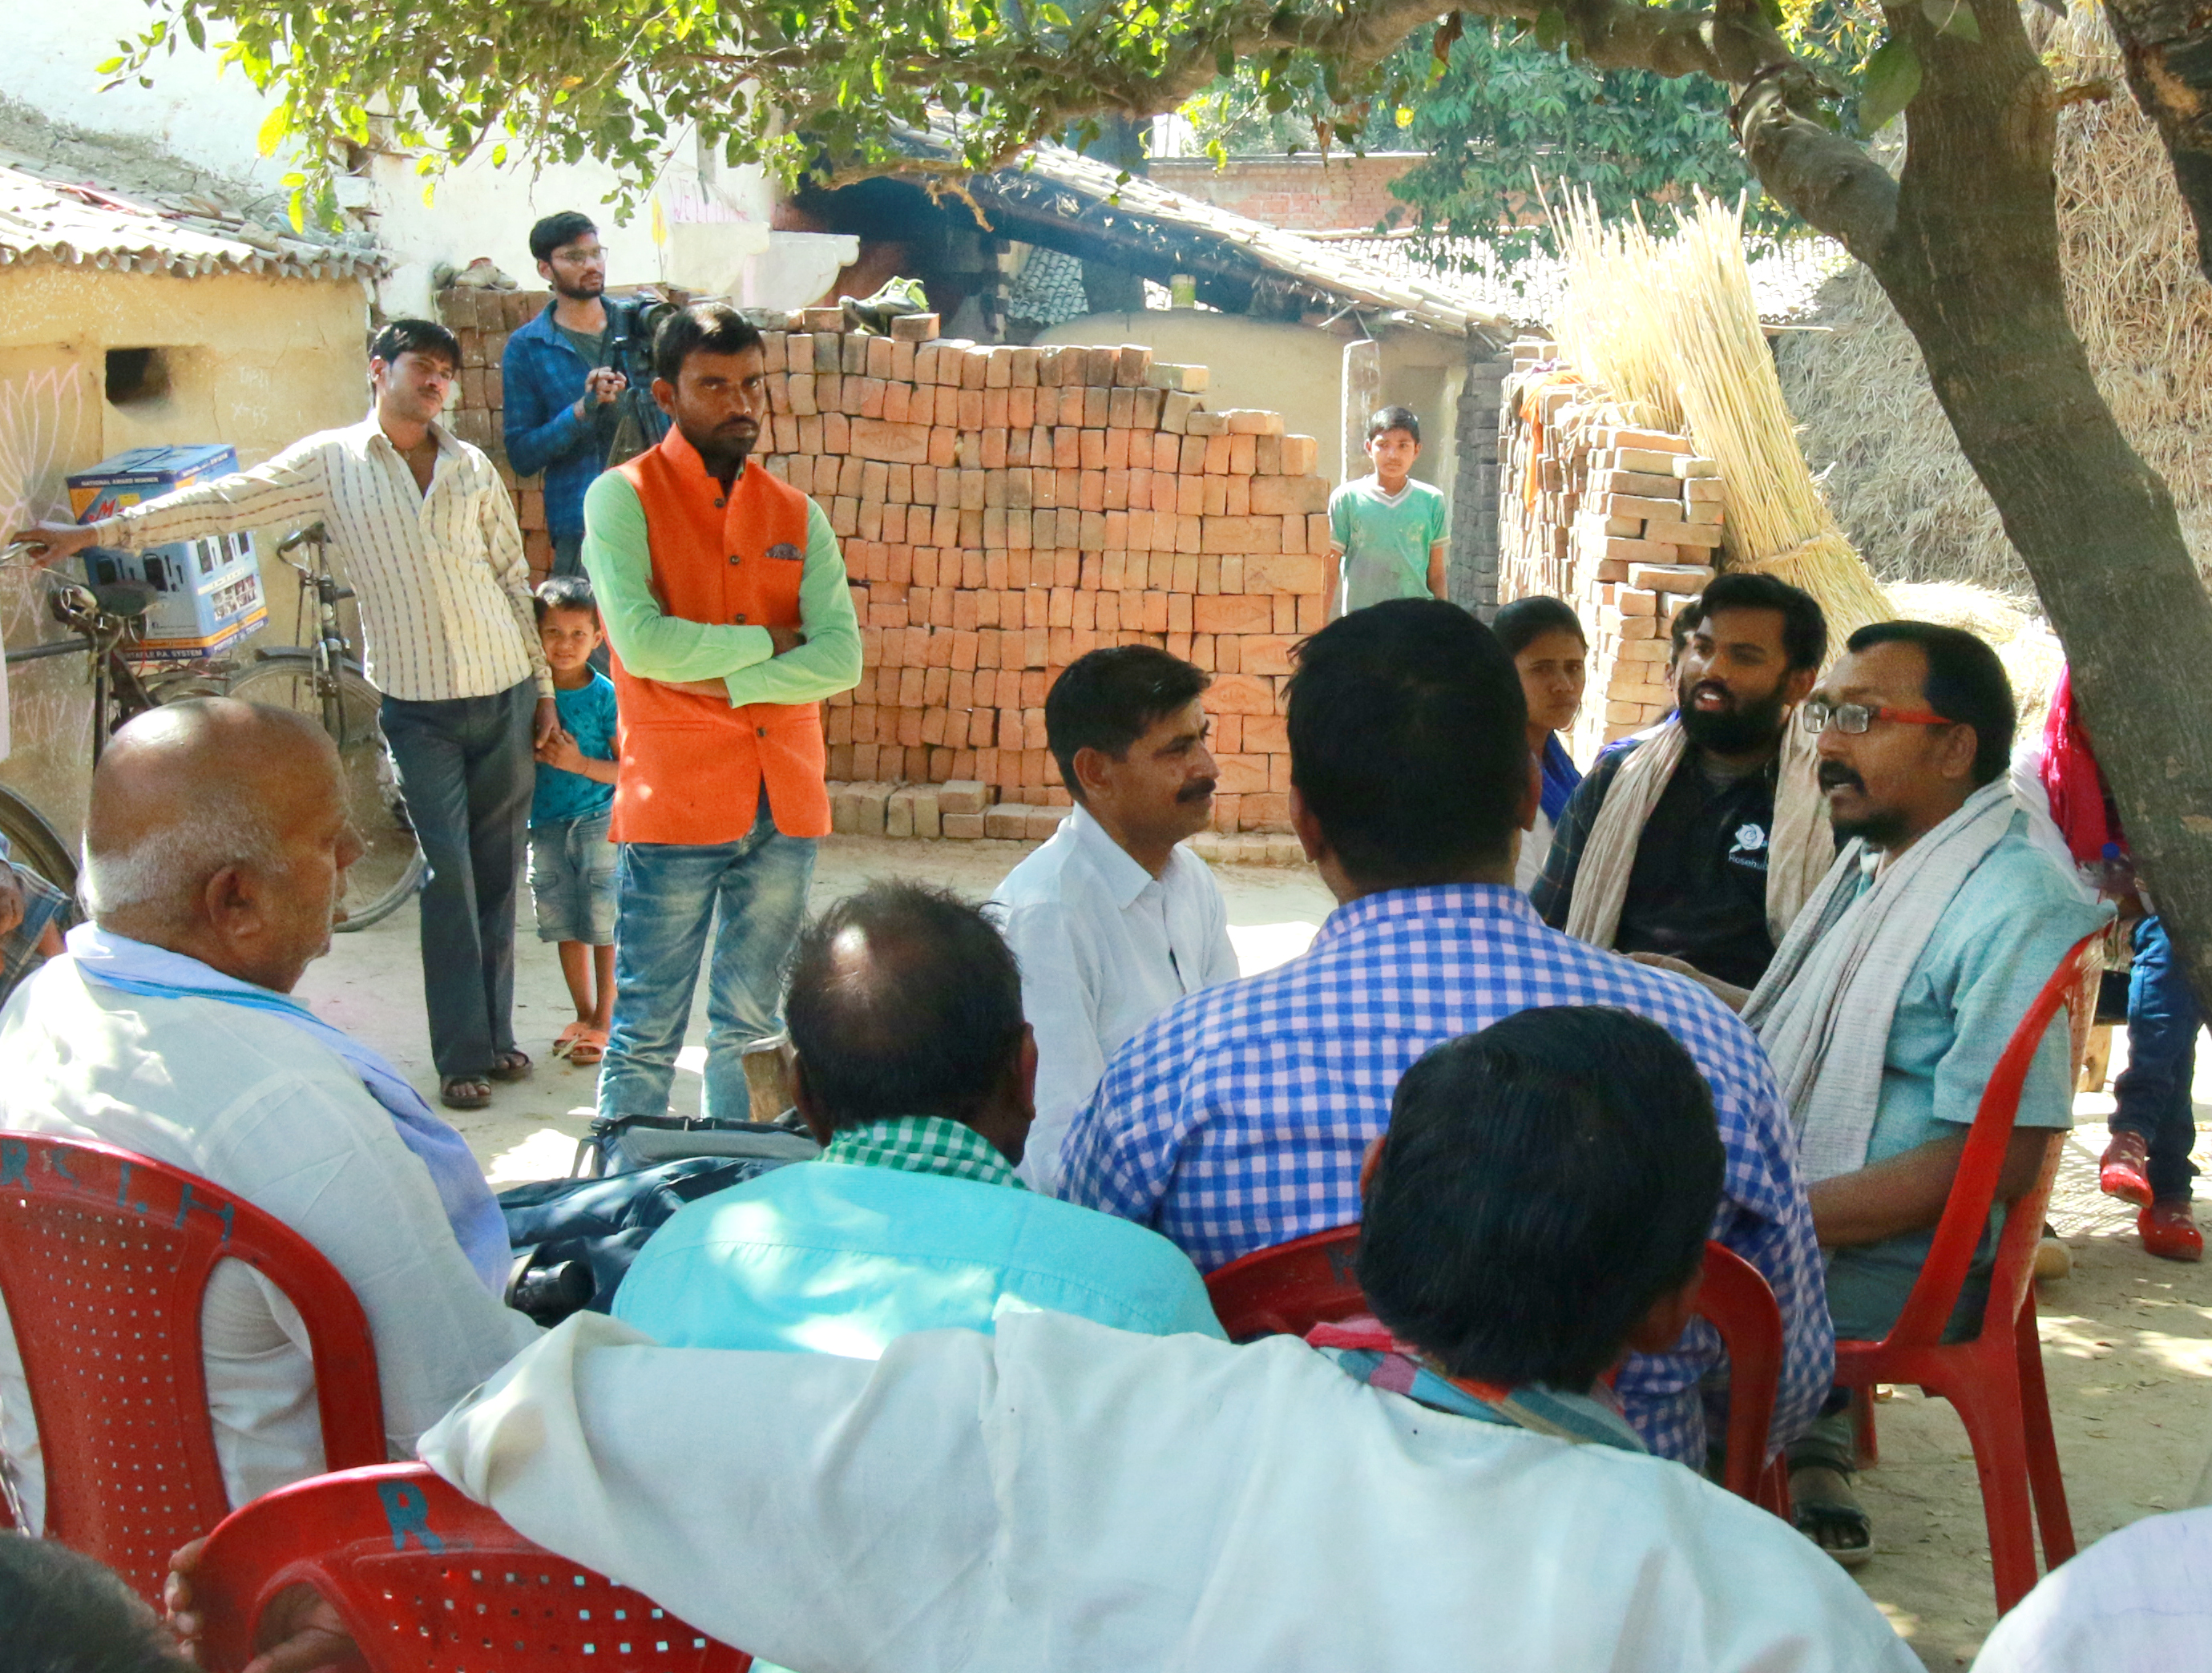 Discussion with farmers during shoot